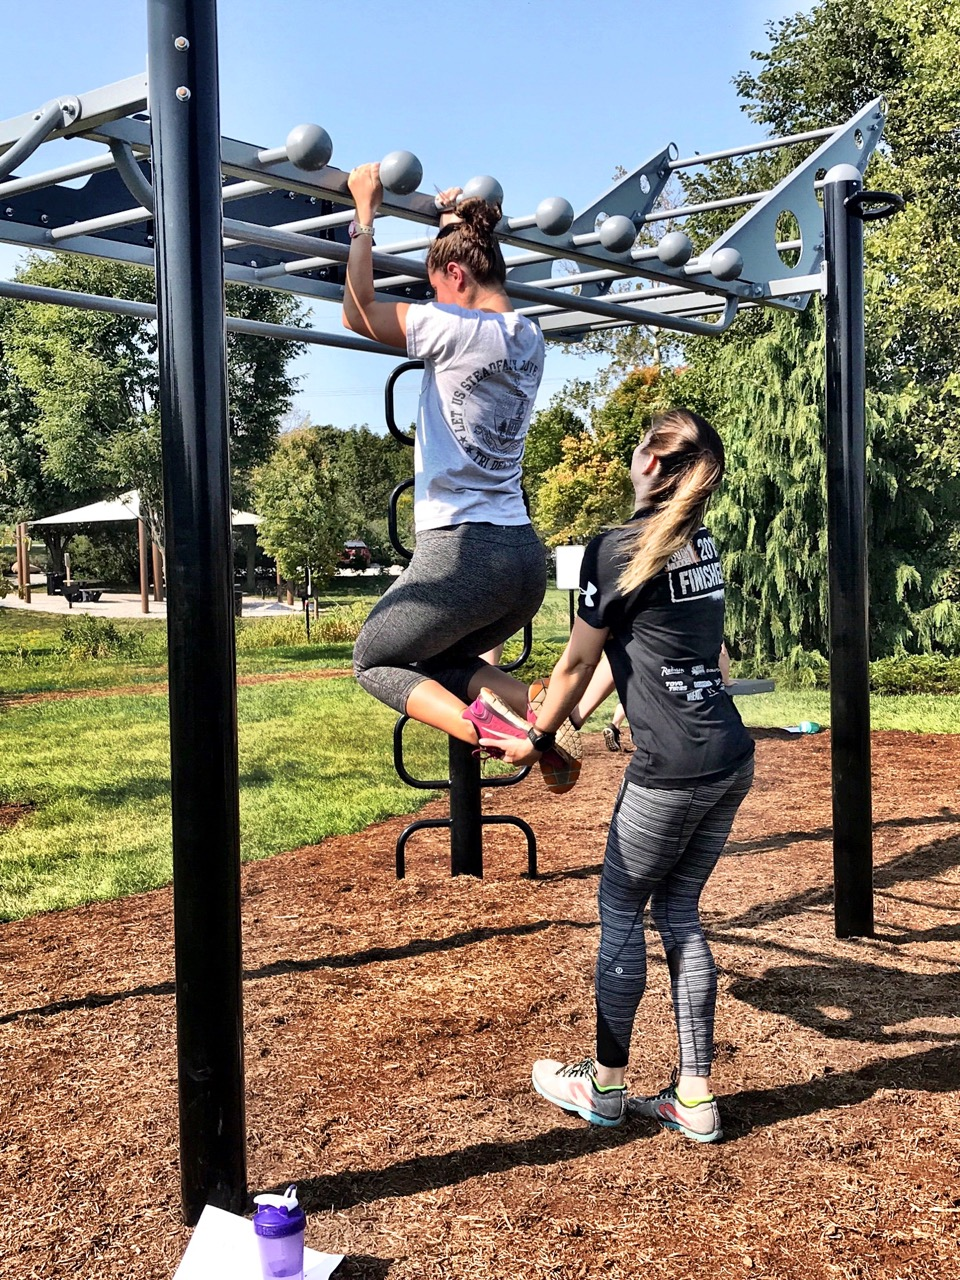 Personal Training Outdoor Fitness on Campus